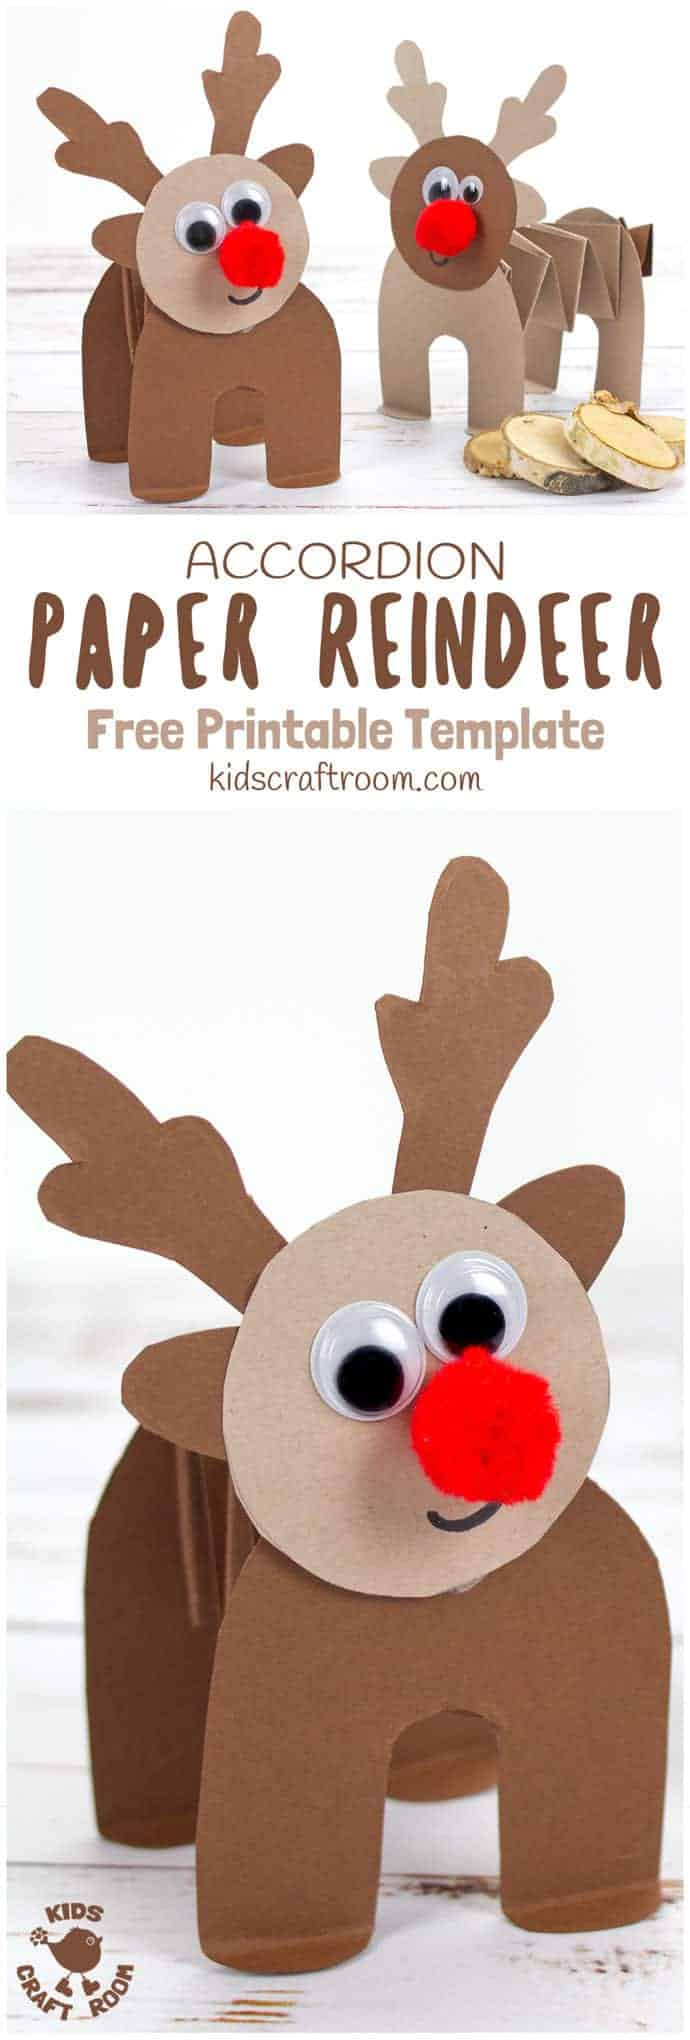 PRINTABLE ACCORDION PAPER REINDEER CRAFT - here's a super fun printable reindeer that kids can play with. This homemade paper reindeer toy has a simple but cleverly folded body that allows it to stand up and be walked along by little hands. The accordion folds work like a spring so the paper reindeer can bounce up and down on their bottoms too! Seriously so much fun and cuteness! This is a free printable reindeer craft. #reindeer #christmas #rudolf #papercrafts #printablecrafts #printables #kidscrafts #christmascrafts #reindeercrafts